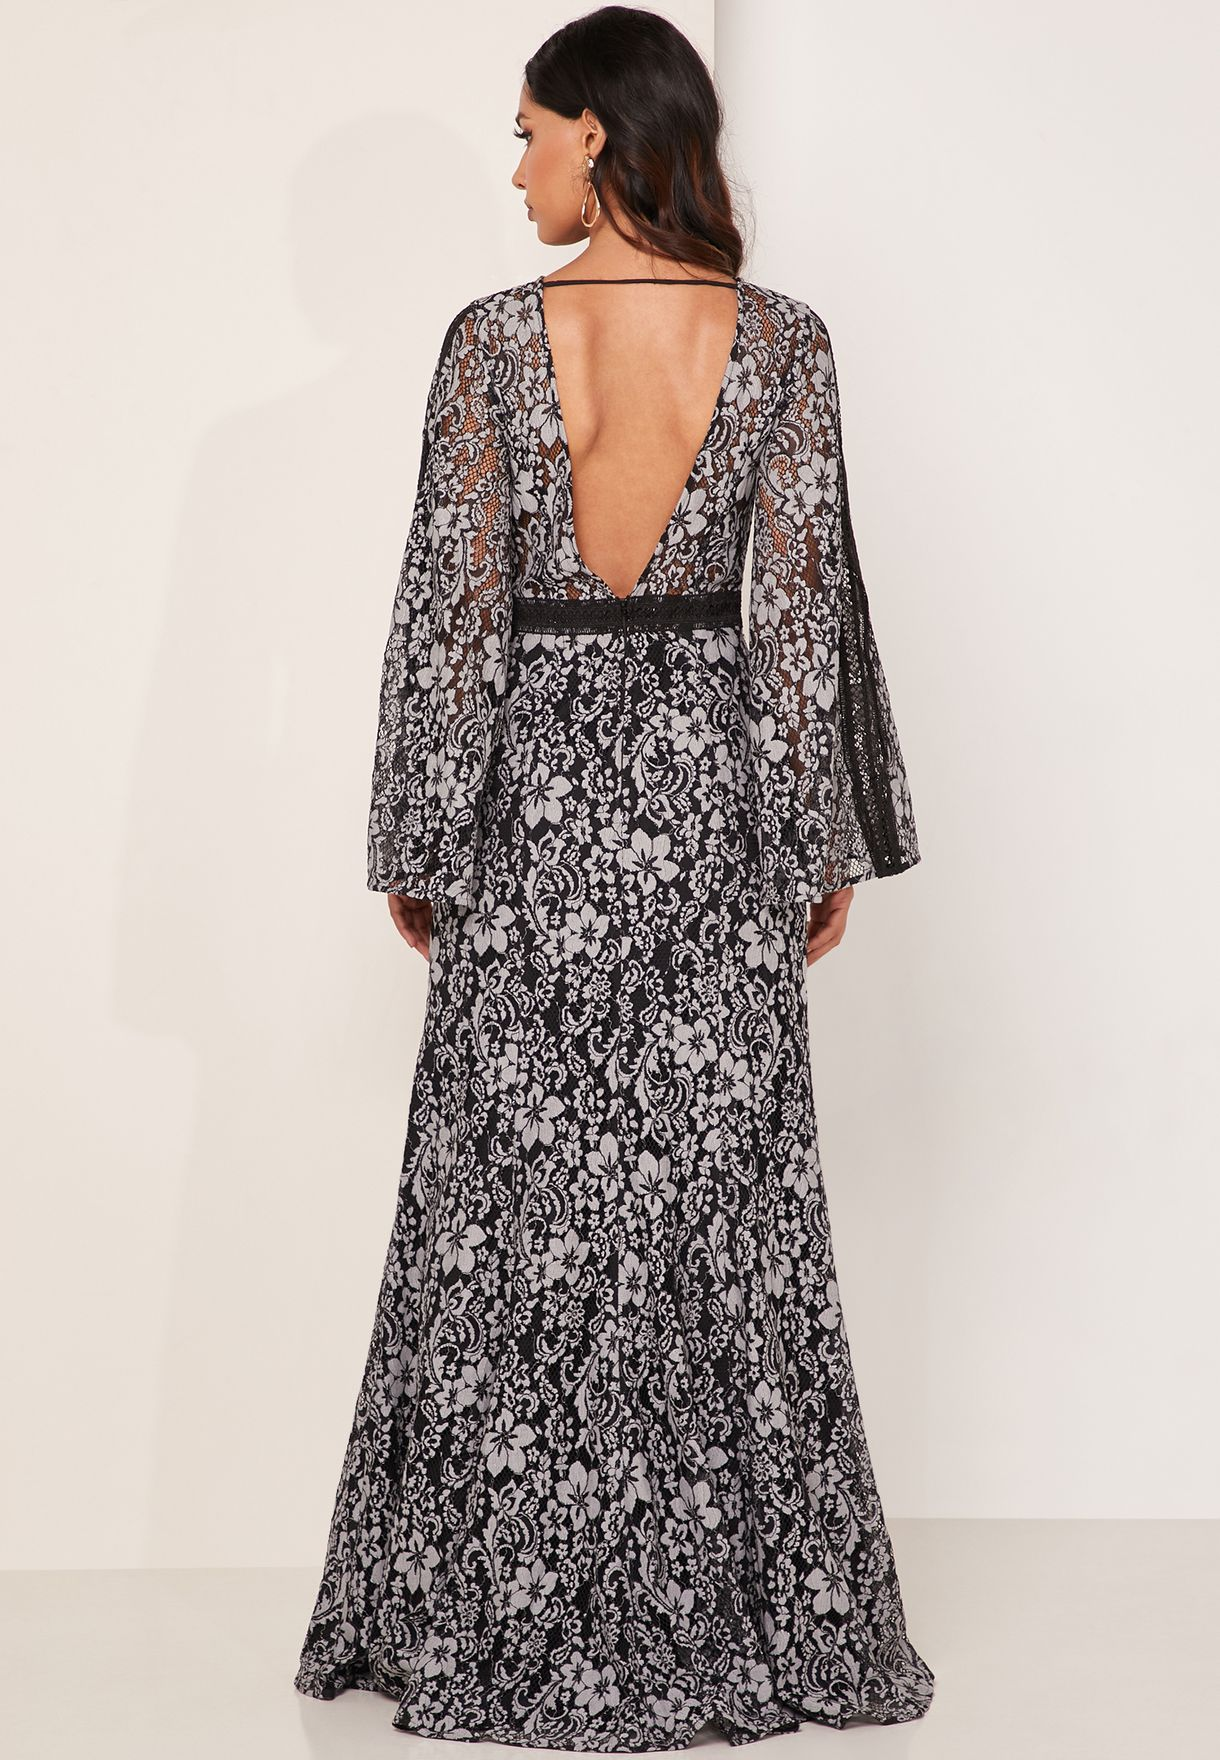 Holder Lace Detail Maxi Dress